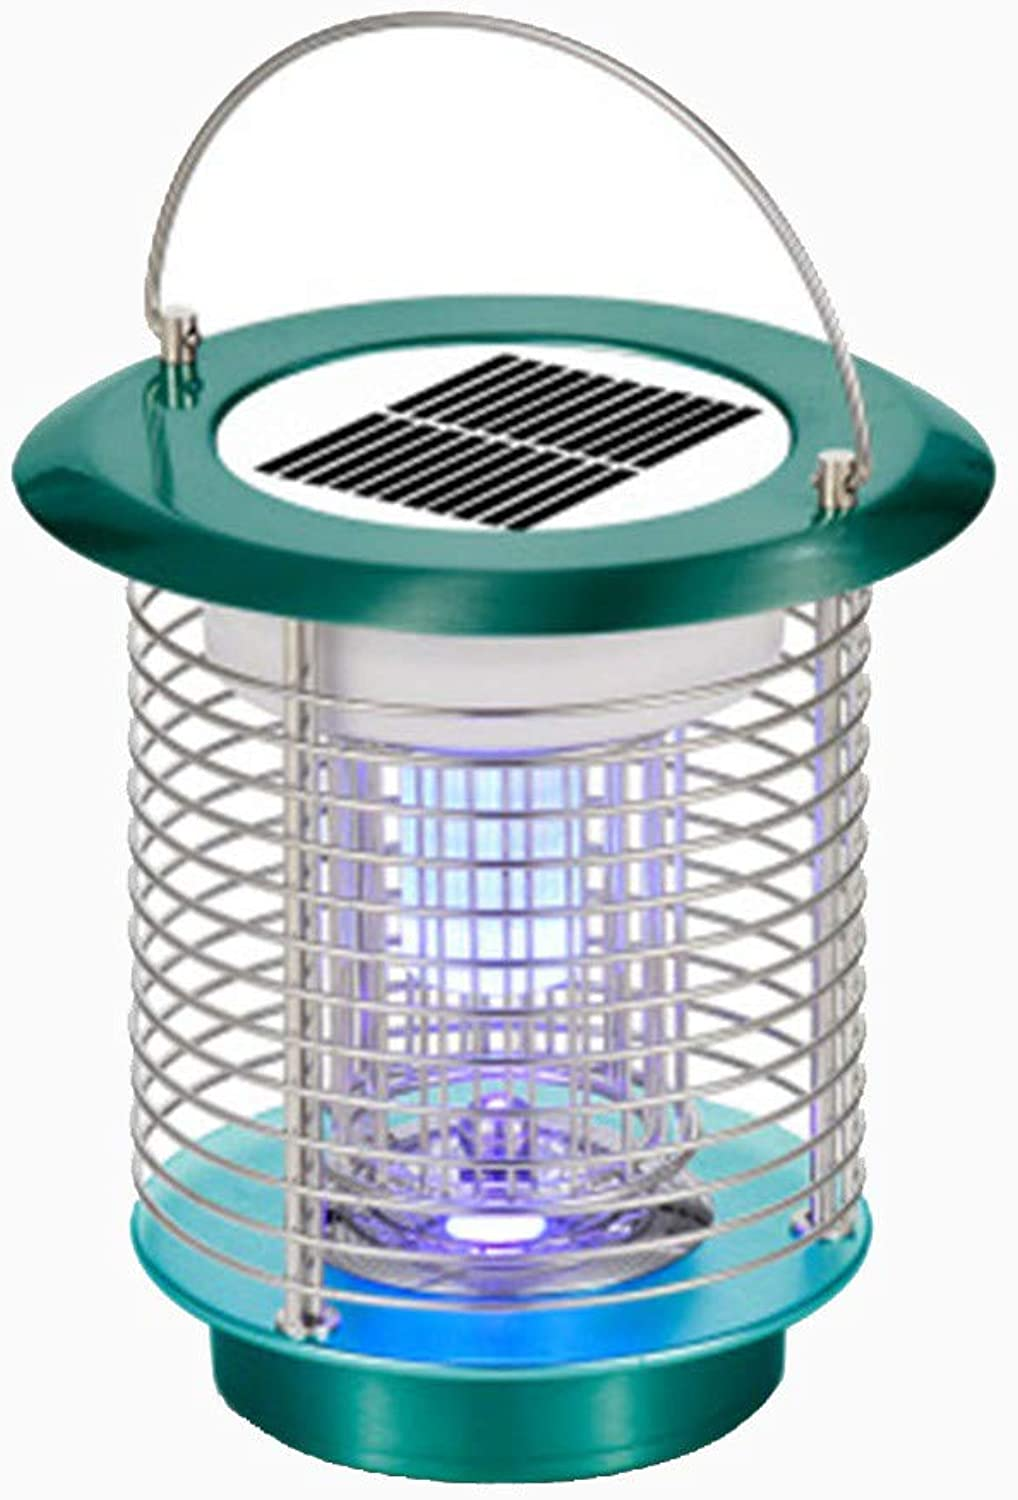 Solar Mosquito ZapperDUDUMEN Waterproof Solar Powered LED Light Pest Zapper Insect Mosquito Killer- Hang Stake in The Ground Garden Lawn Residential, Commercial, Industrial,House Farm (Green)